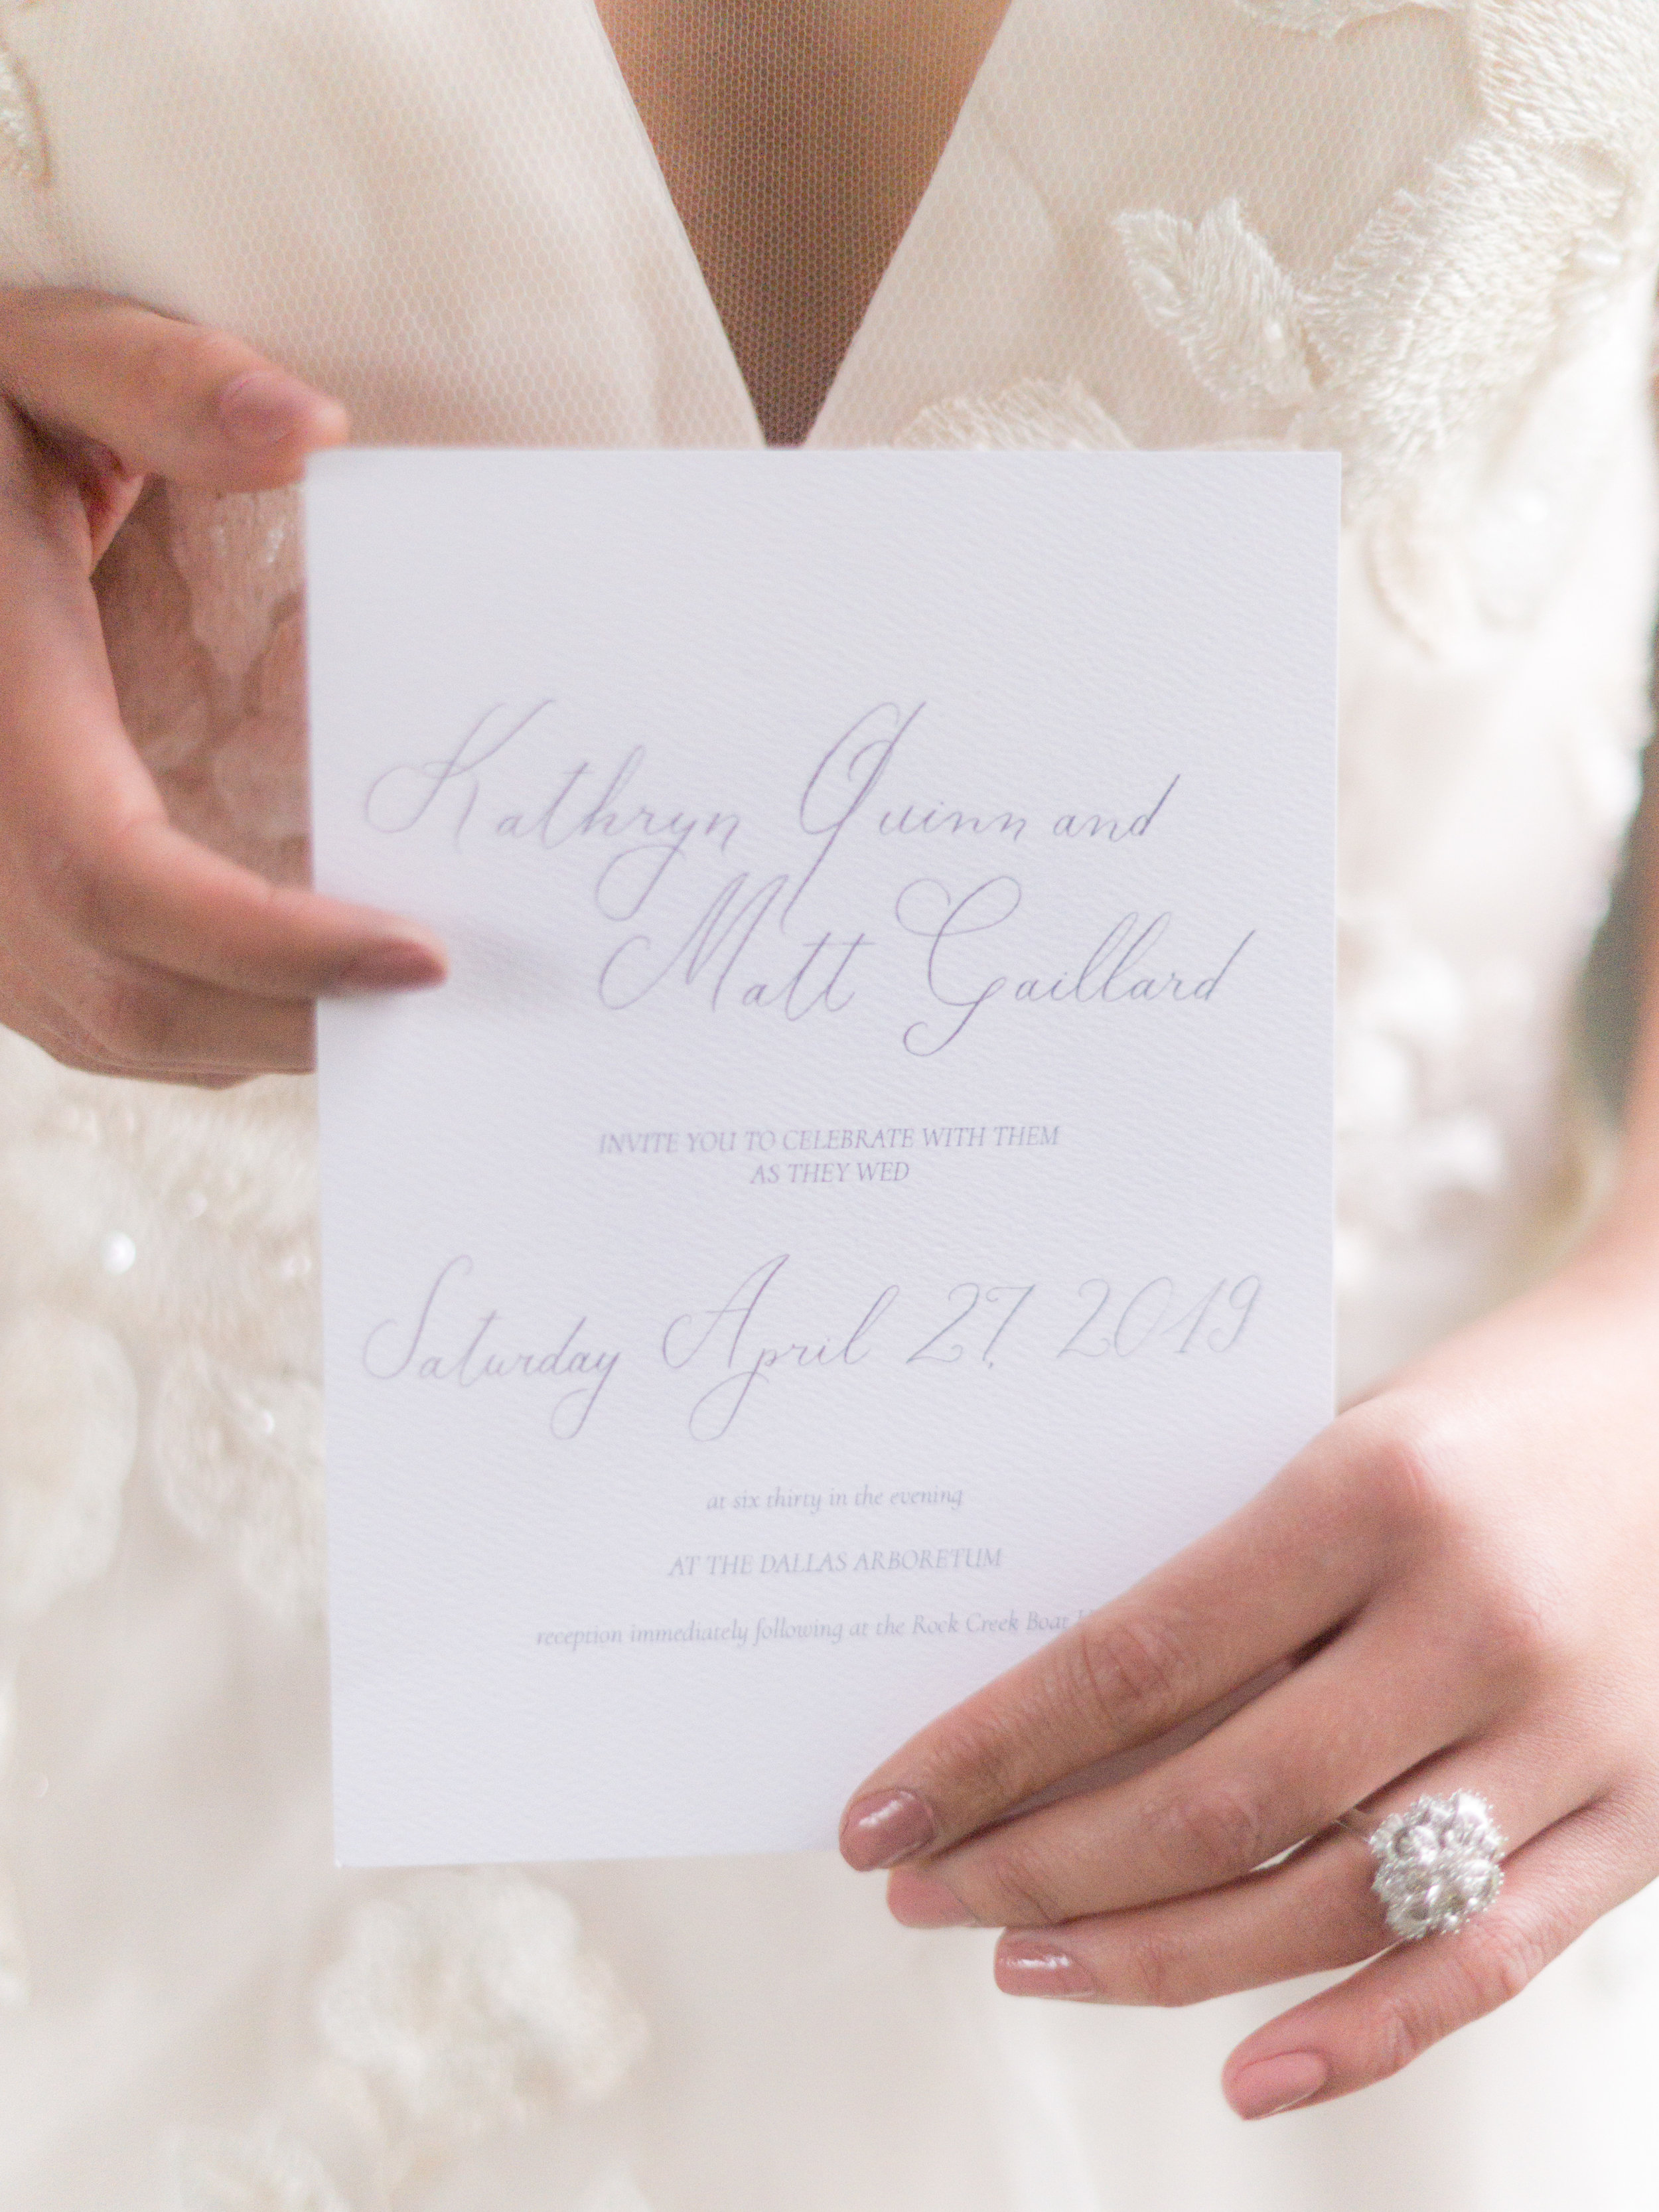 - When Manda Waever sent over an inspiration board for a bridal shoot in Ithaca, I knew exactly what invitation suite to send her.